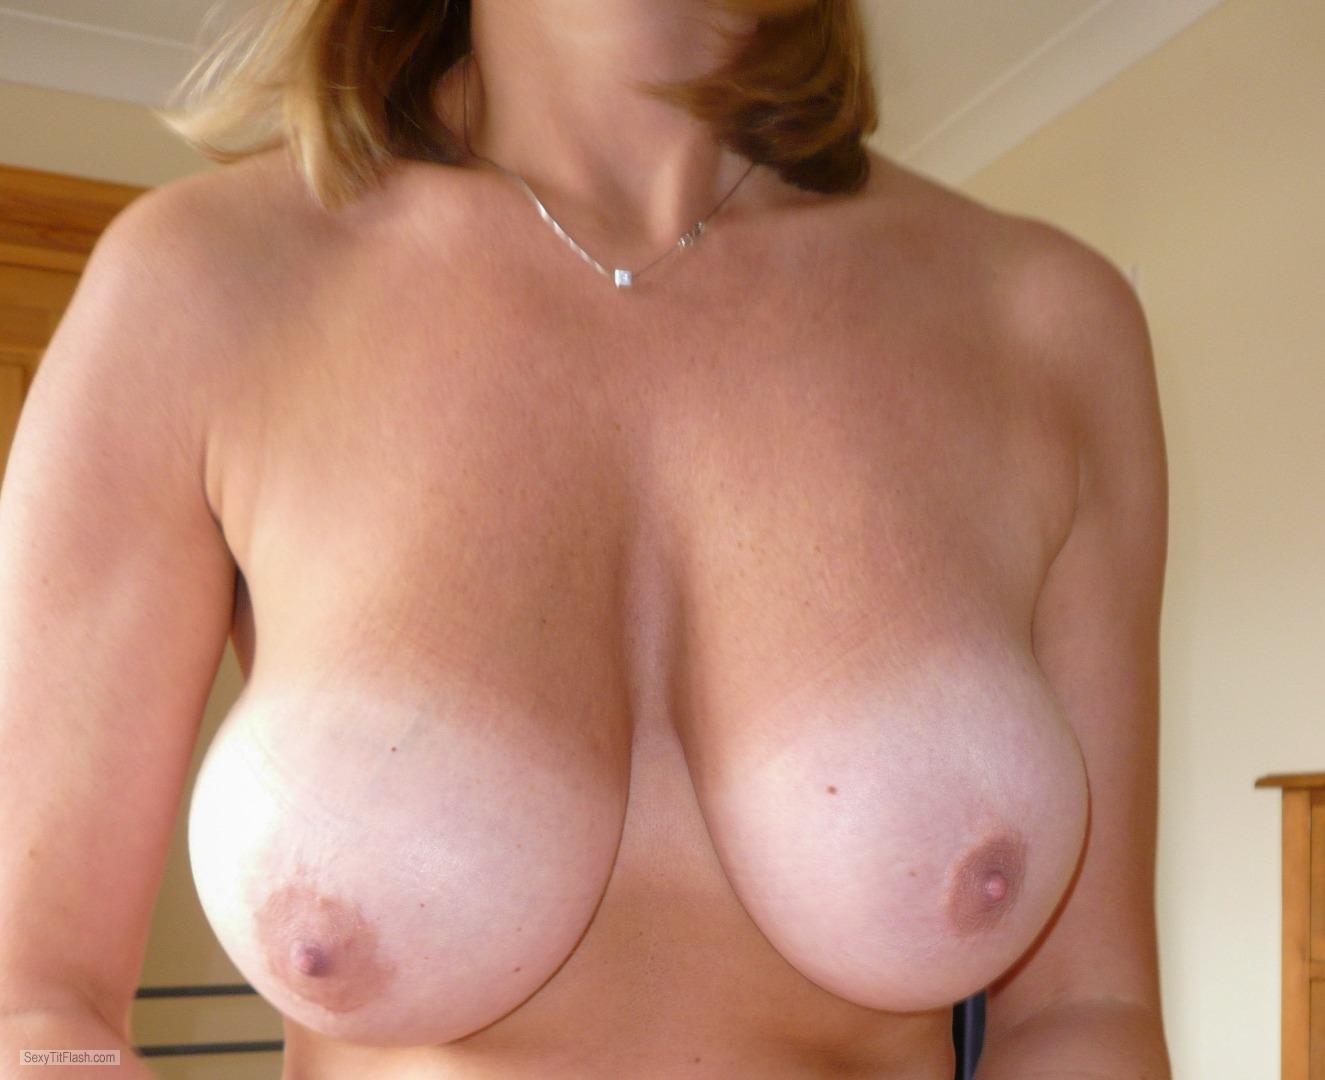 Very big Tits Of My Wife SammyAx